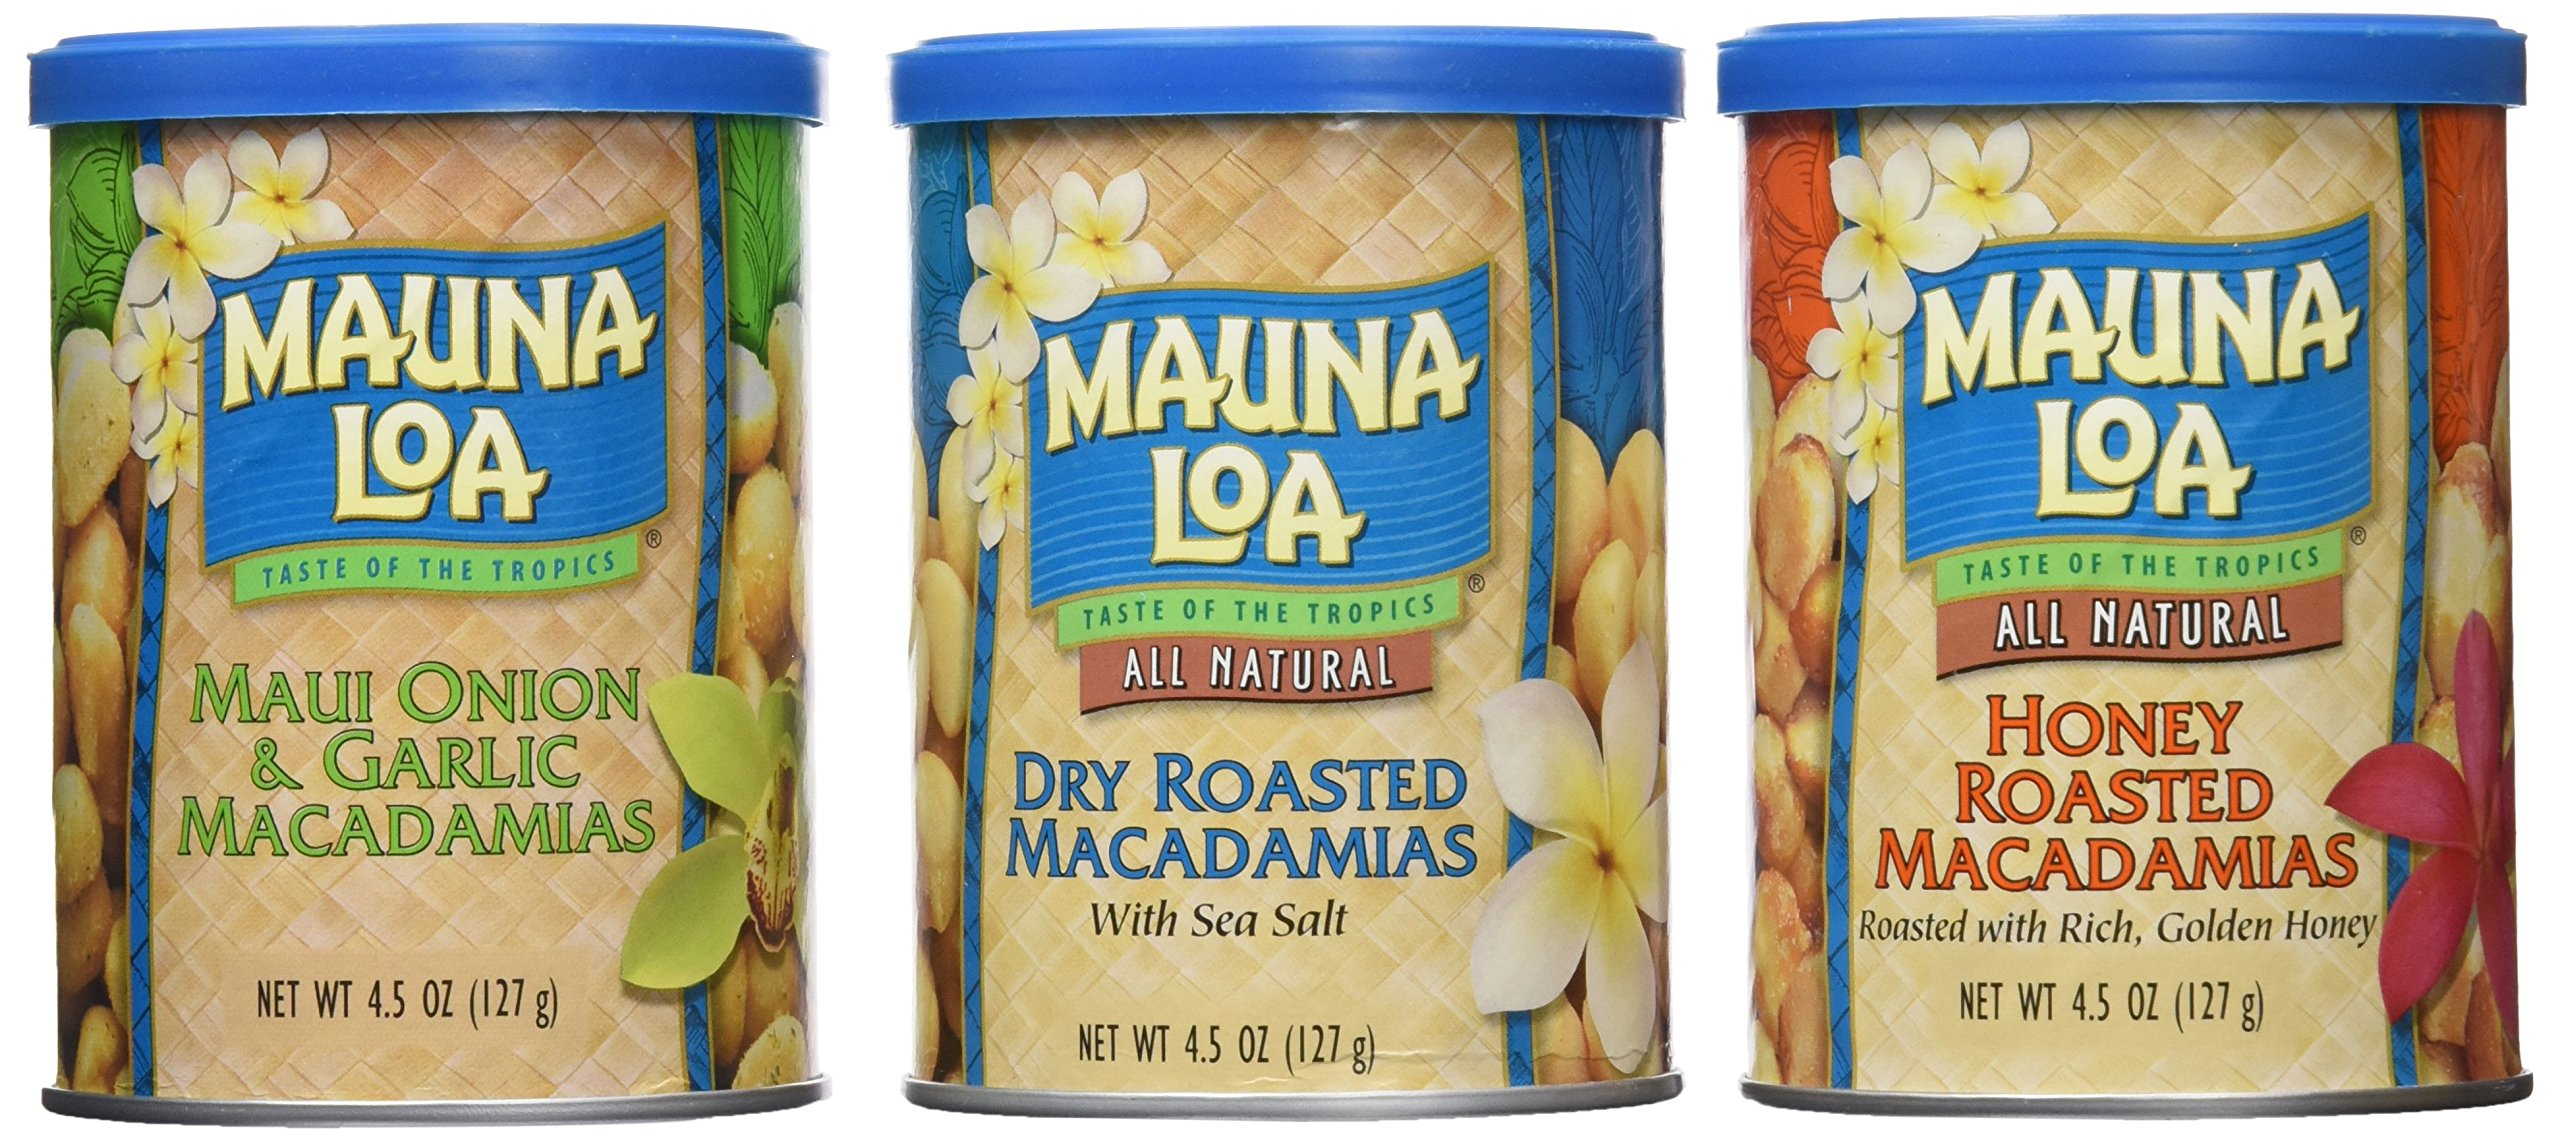 Mauna Loa: Island Classics Dry Roasted, Honey Roasted, Maui Onion & Garlic Macadamias, 13.5 Oz, 3 Pack